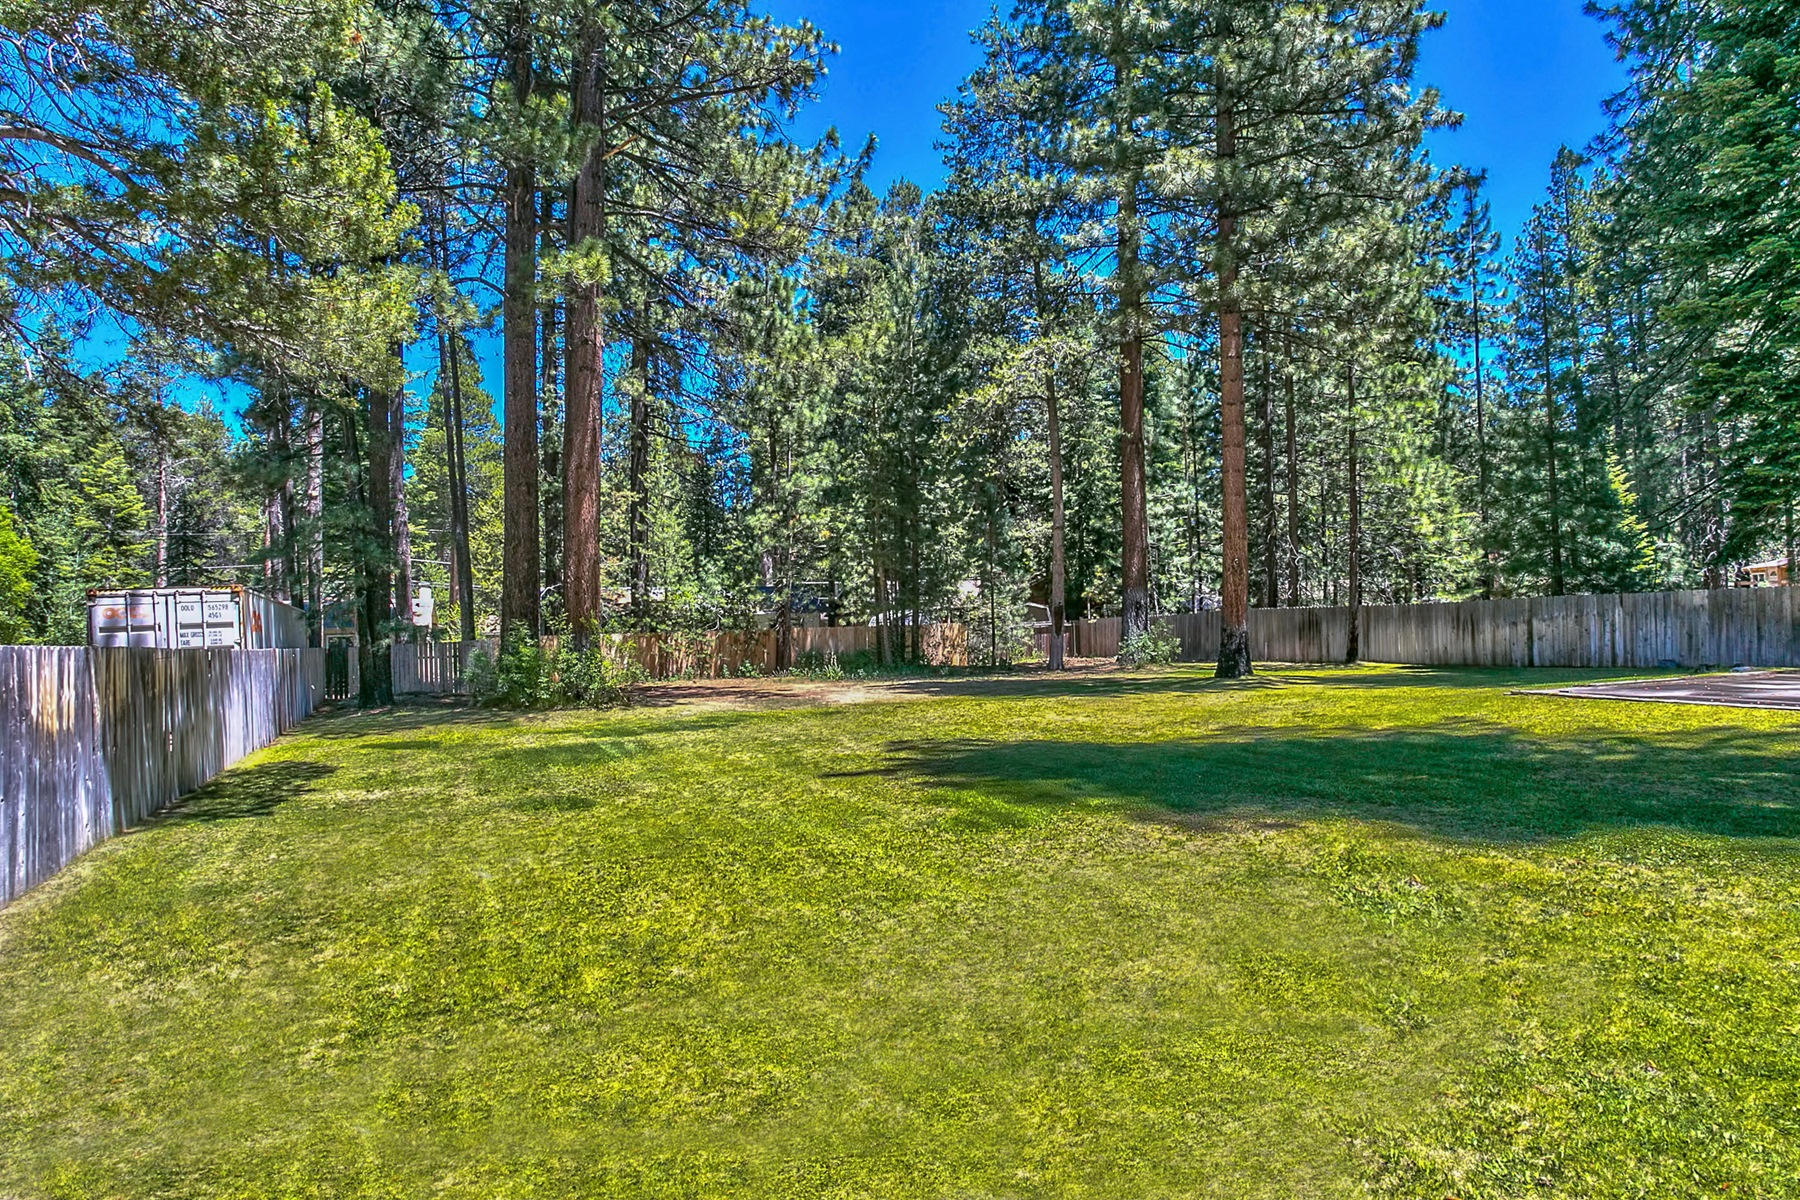 Additional photo for property listing at 745 Eloise Avenue  South Lake Tahoe, California 96150 United States